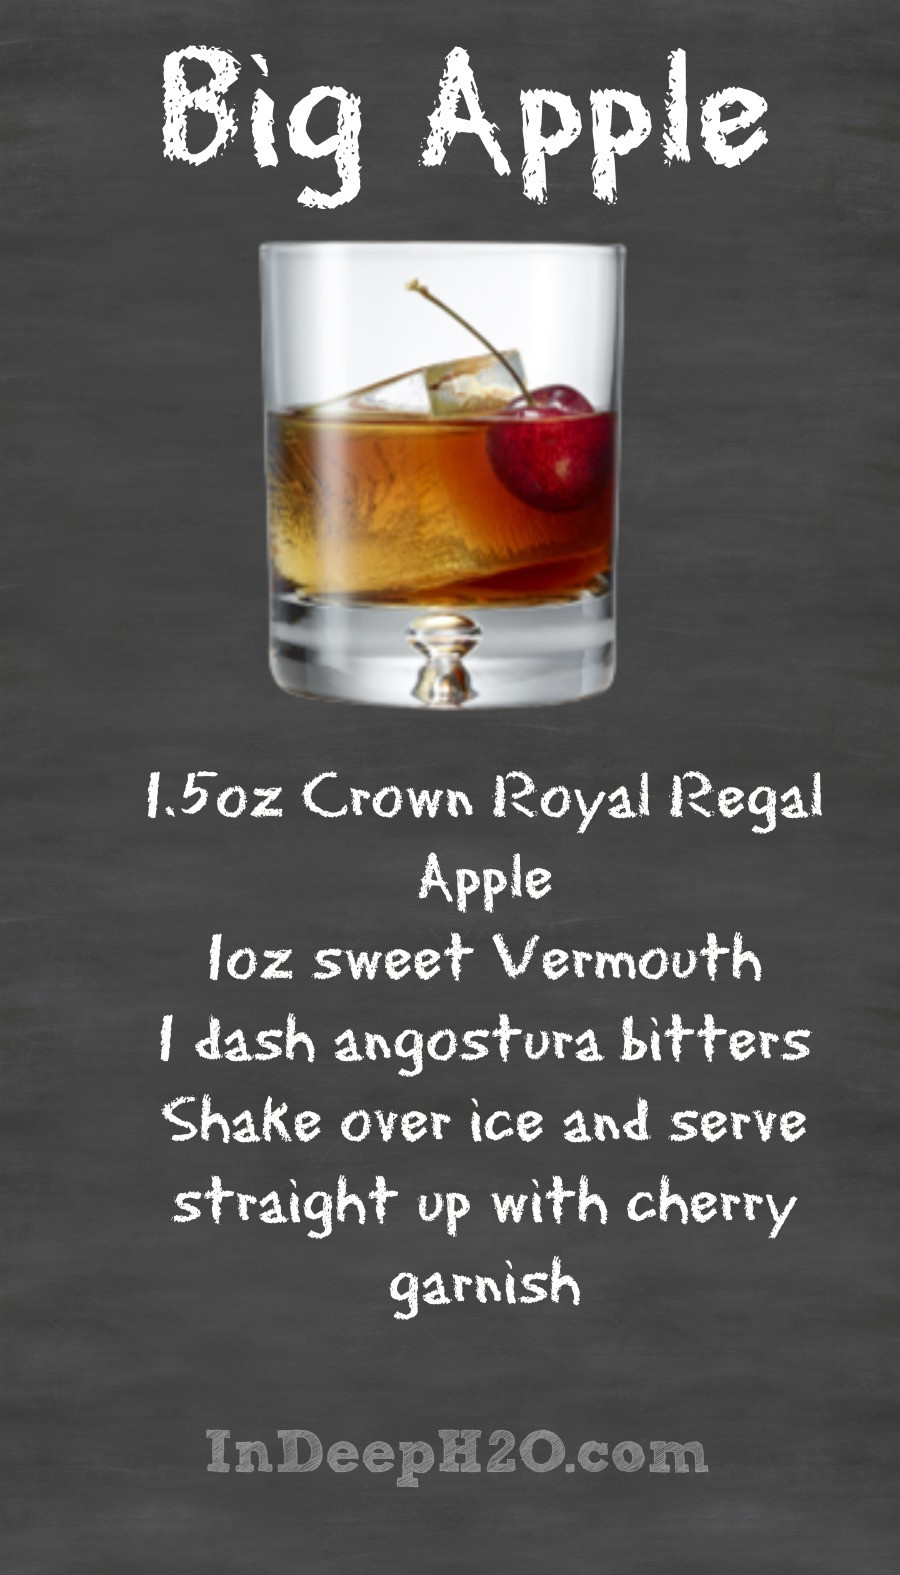 Crown Apple Drinks Recipes  Crown Royal Regal Apple Cocktail Recipes CrownApple In